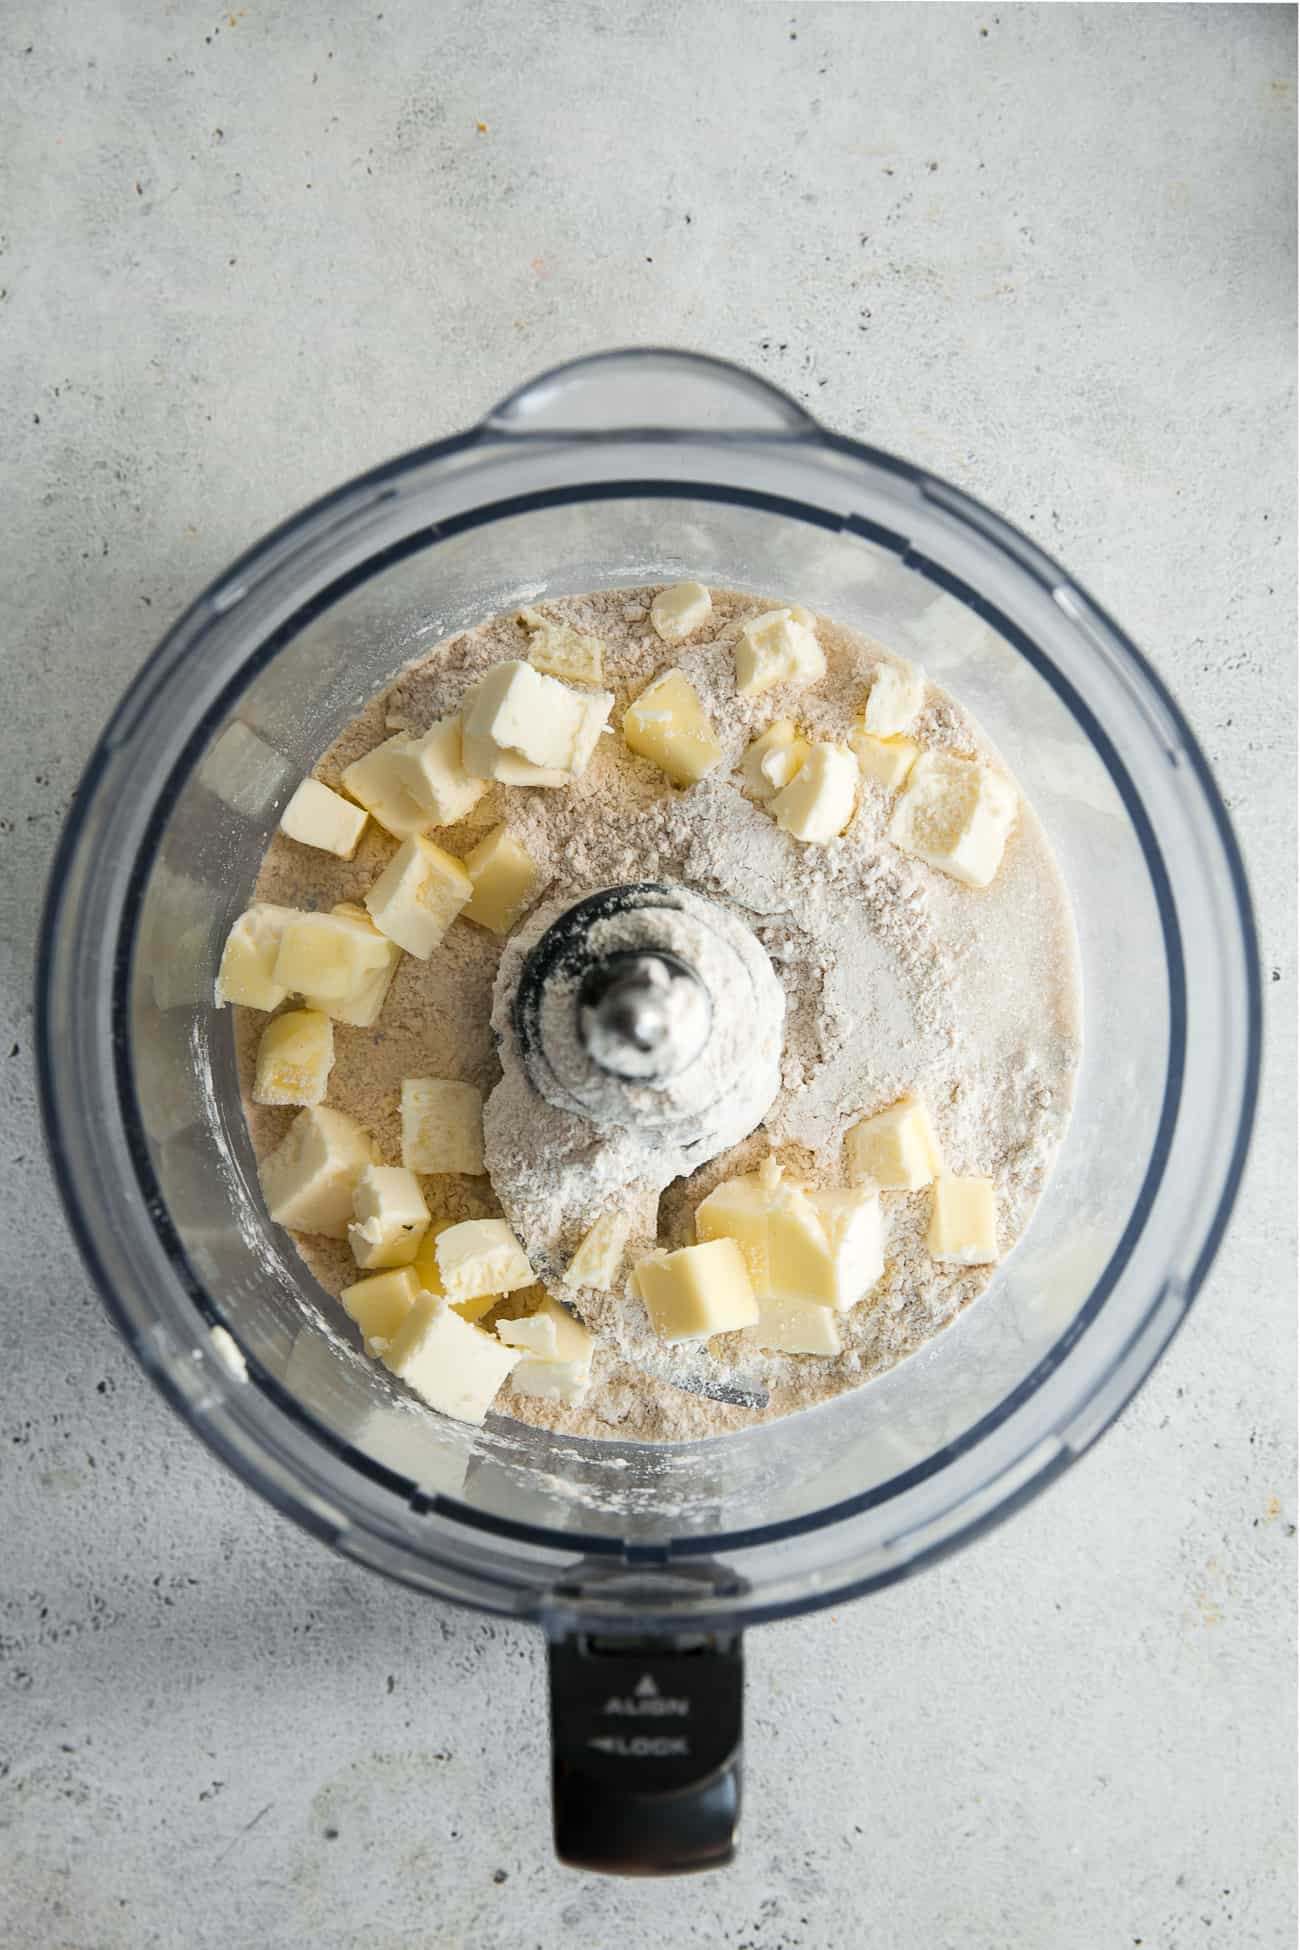 cubed butter, flour and sugar in food processor bowl